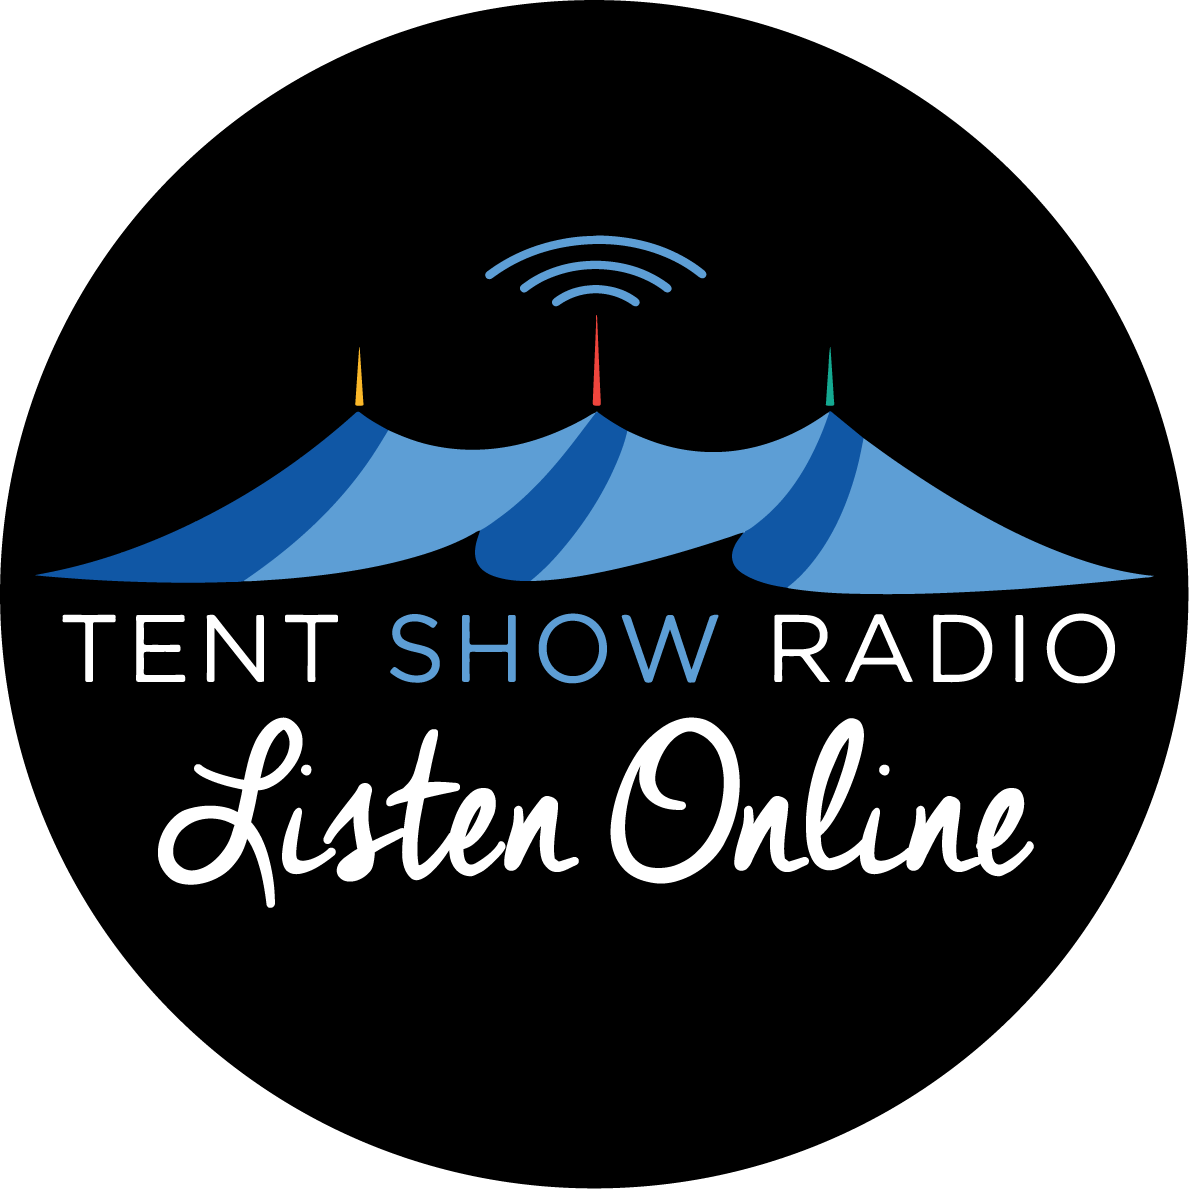 Caption: Tent Show Radio Logo